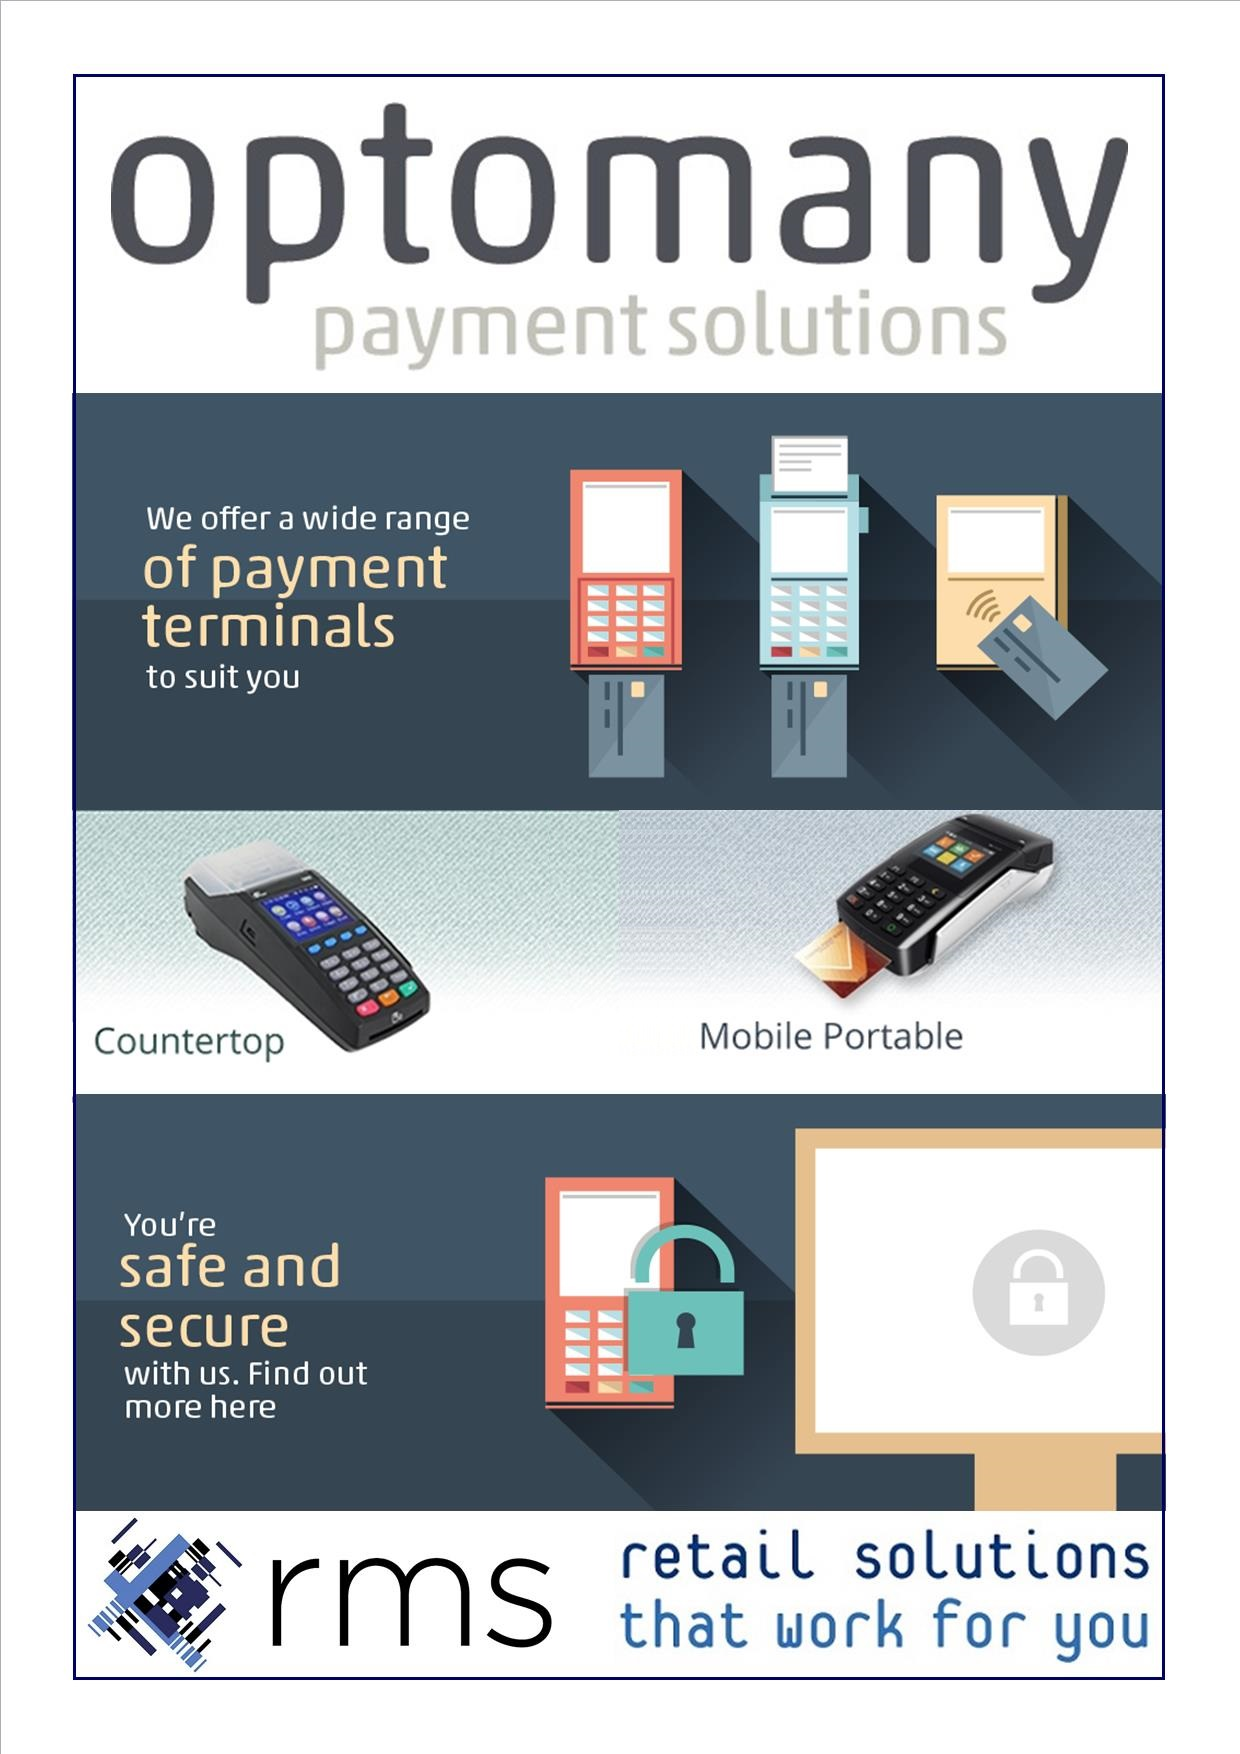 interoperable payment acceptance soluti - HD1240×1754